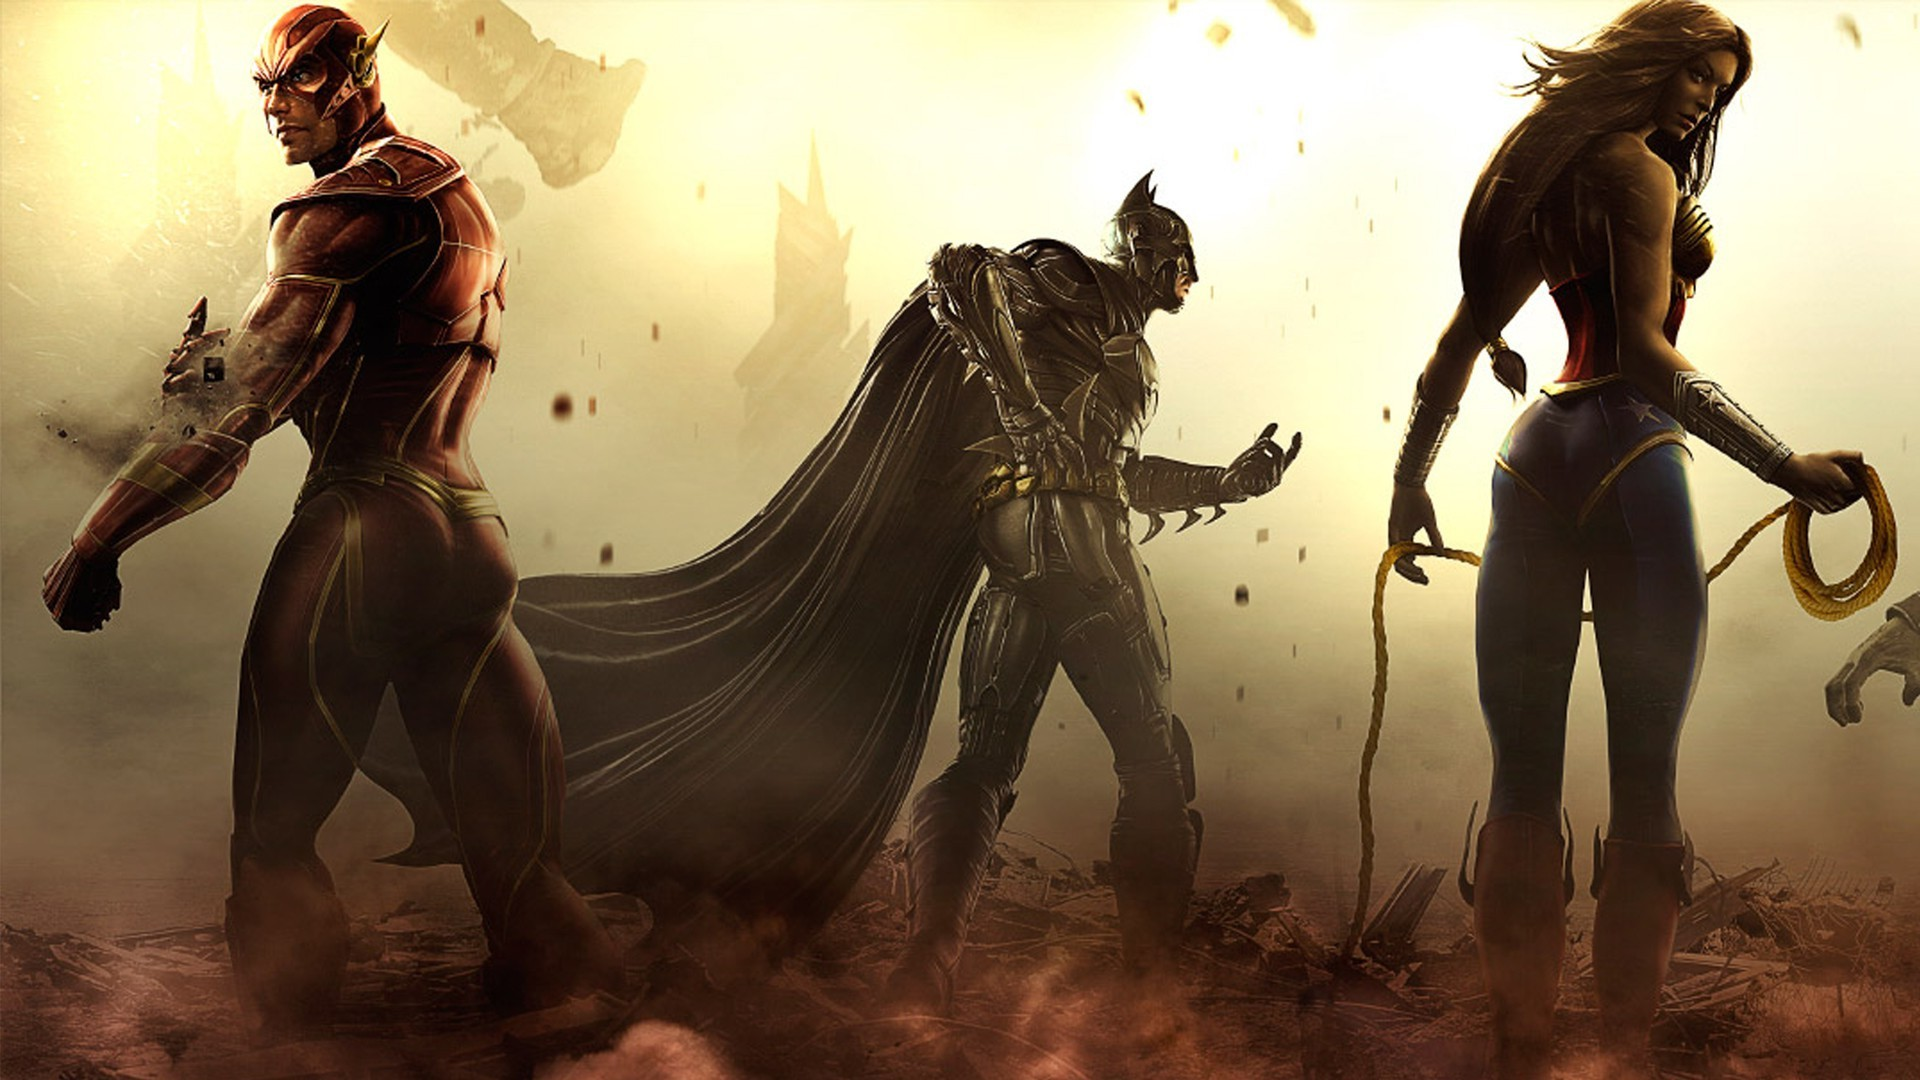 injustice gods among us game hd wallpaper 1920x1080 4872 1920x1080